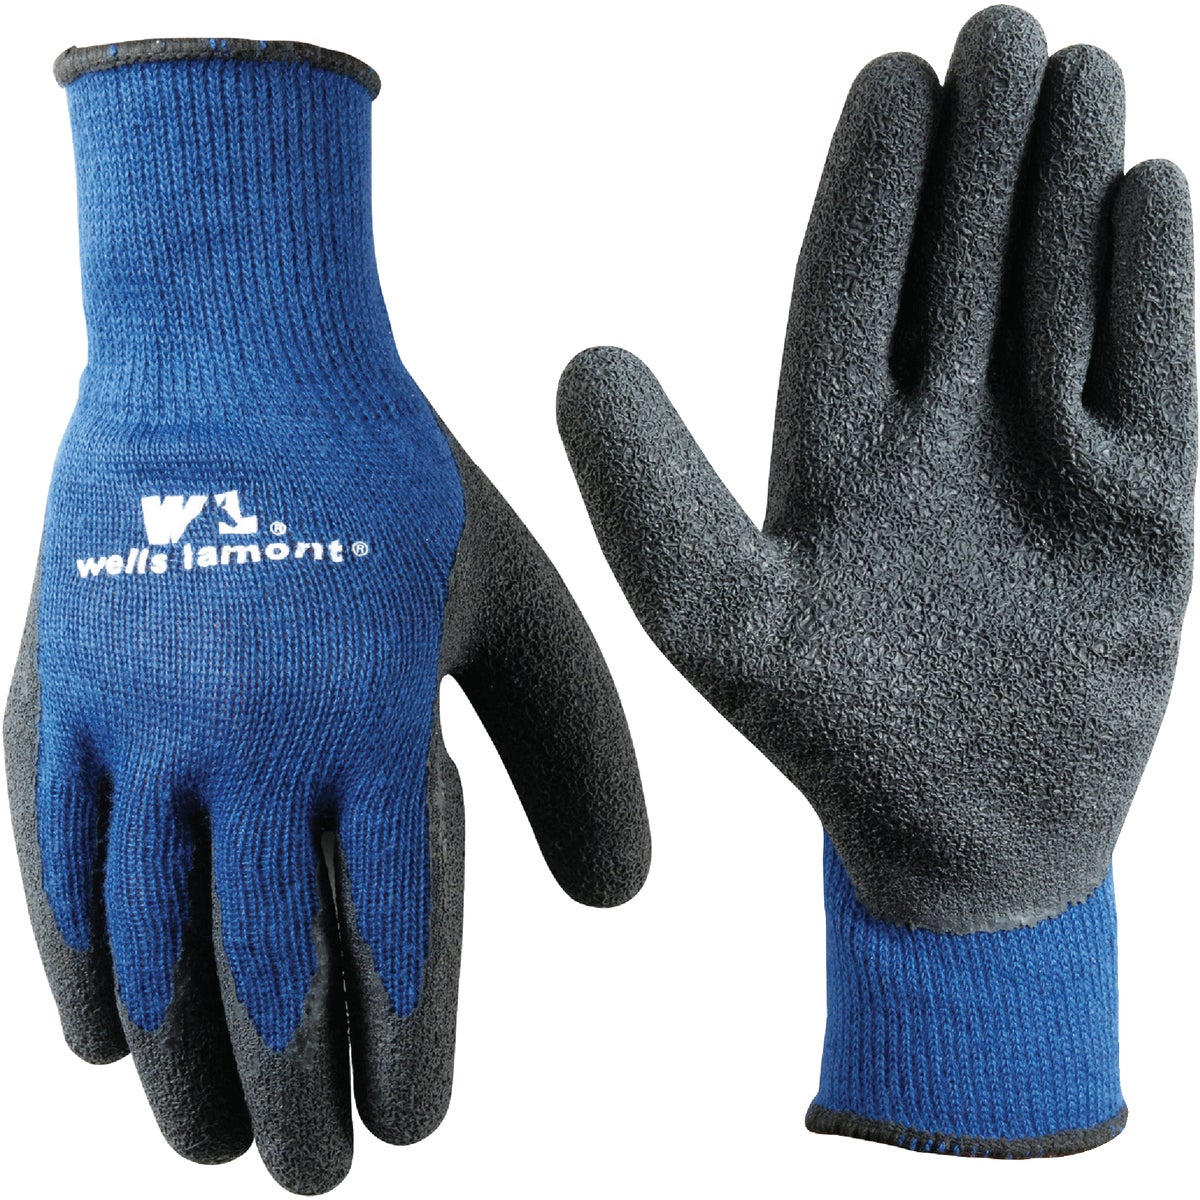 XL LATEX COATED GLOVE